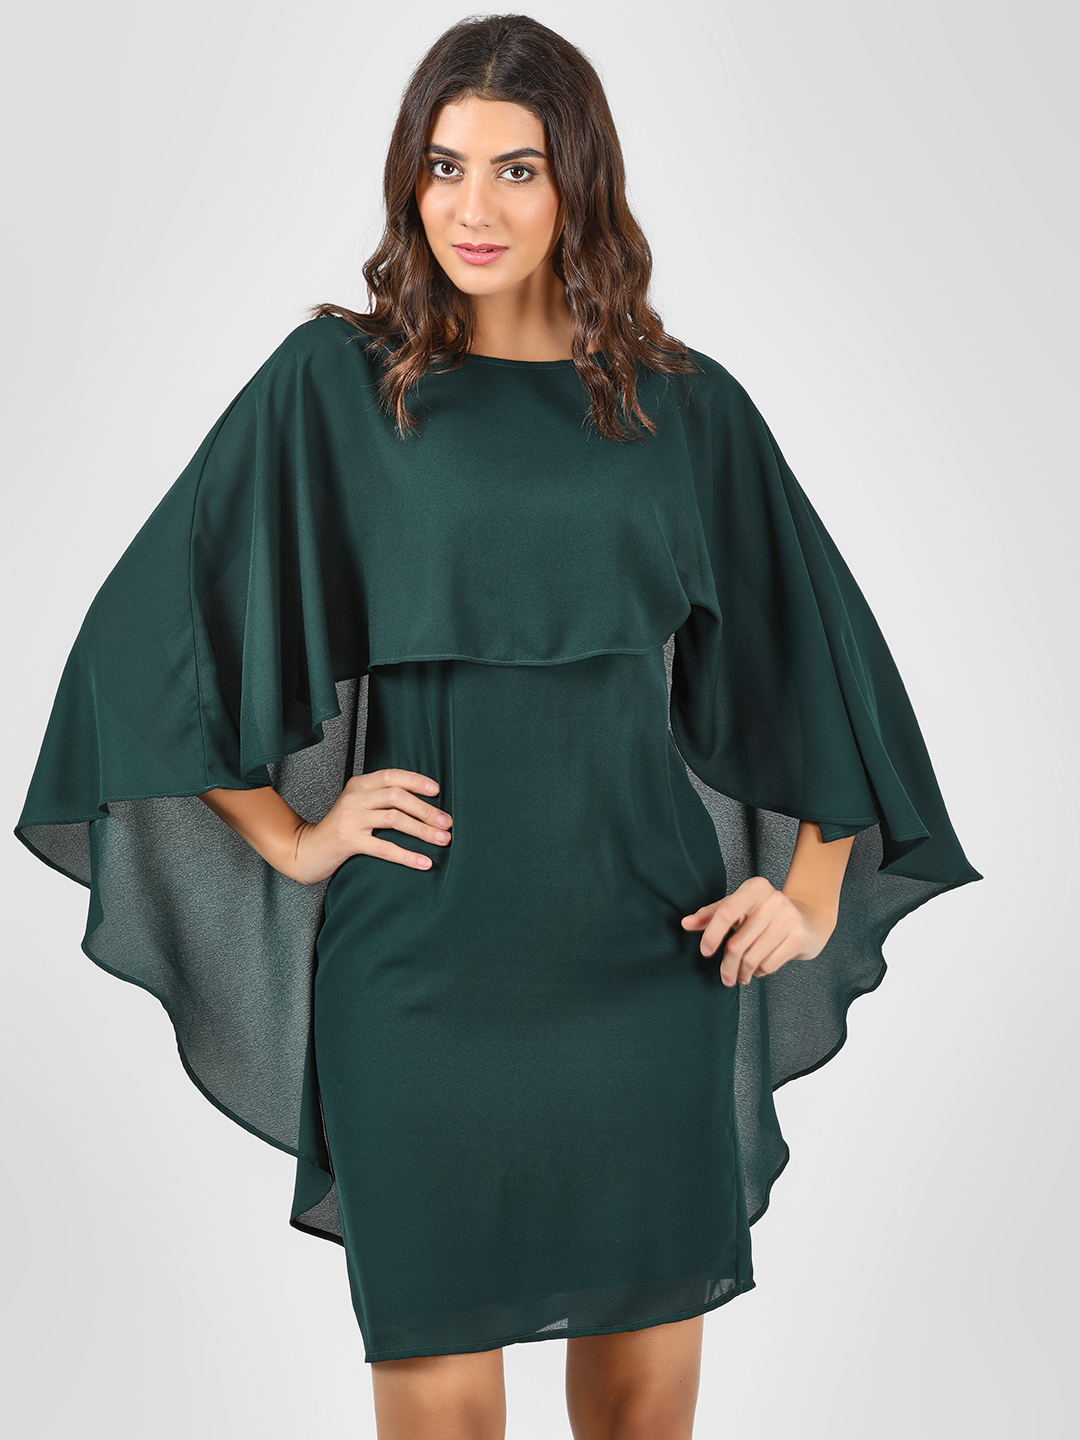 Femella Green Cape Overlap Shift Dress 1